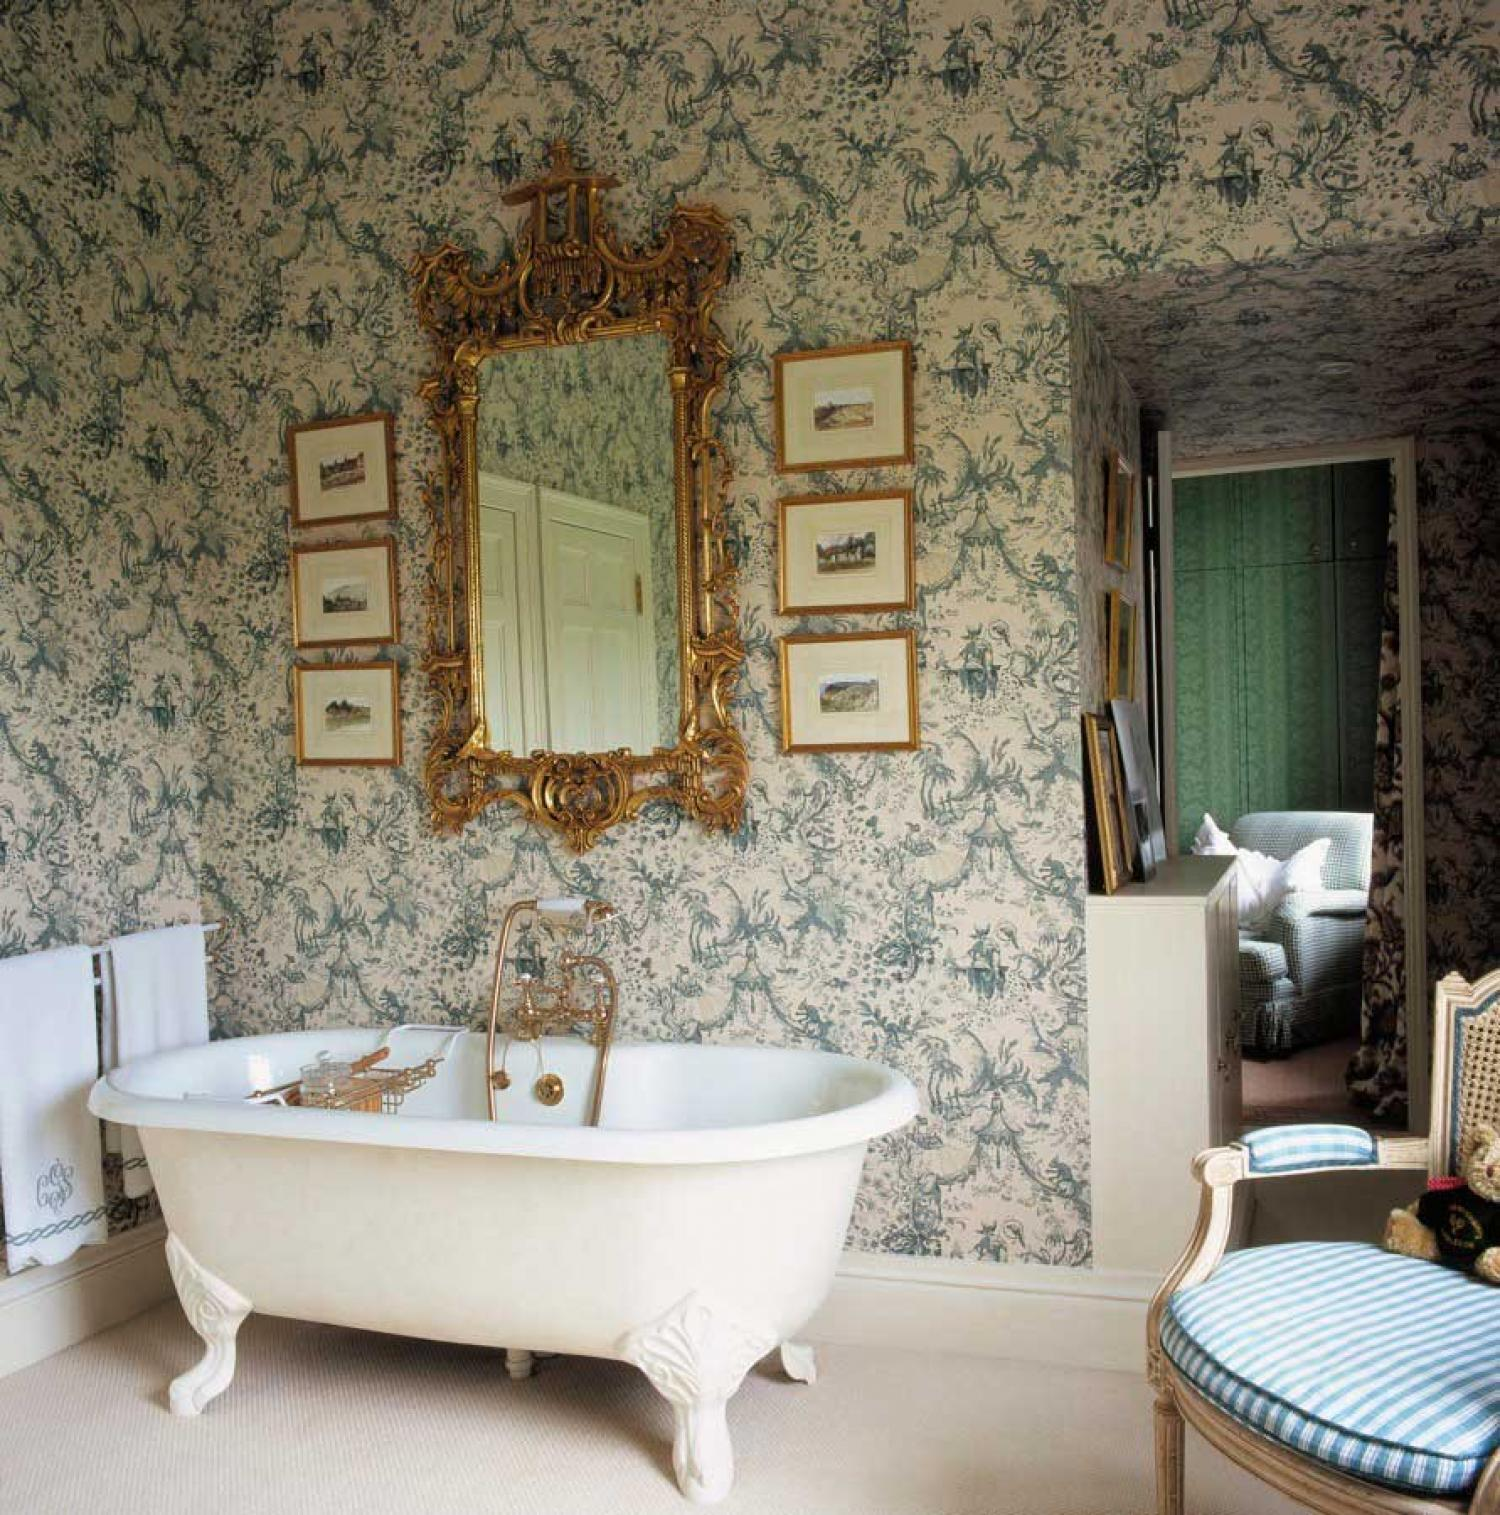 Ideas-of-Victorian-Interior-Design-Design-a-Room-Always-wanted-a-tub-like-this-wallpaper-wp422108-1